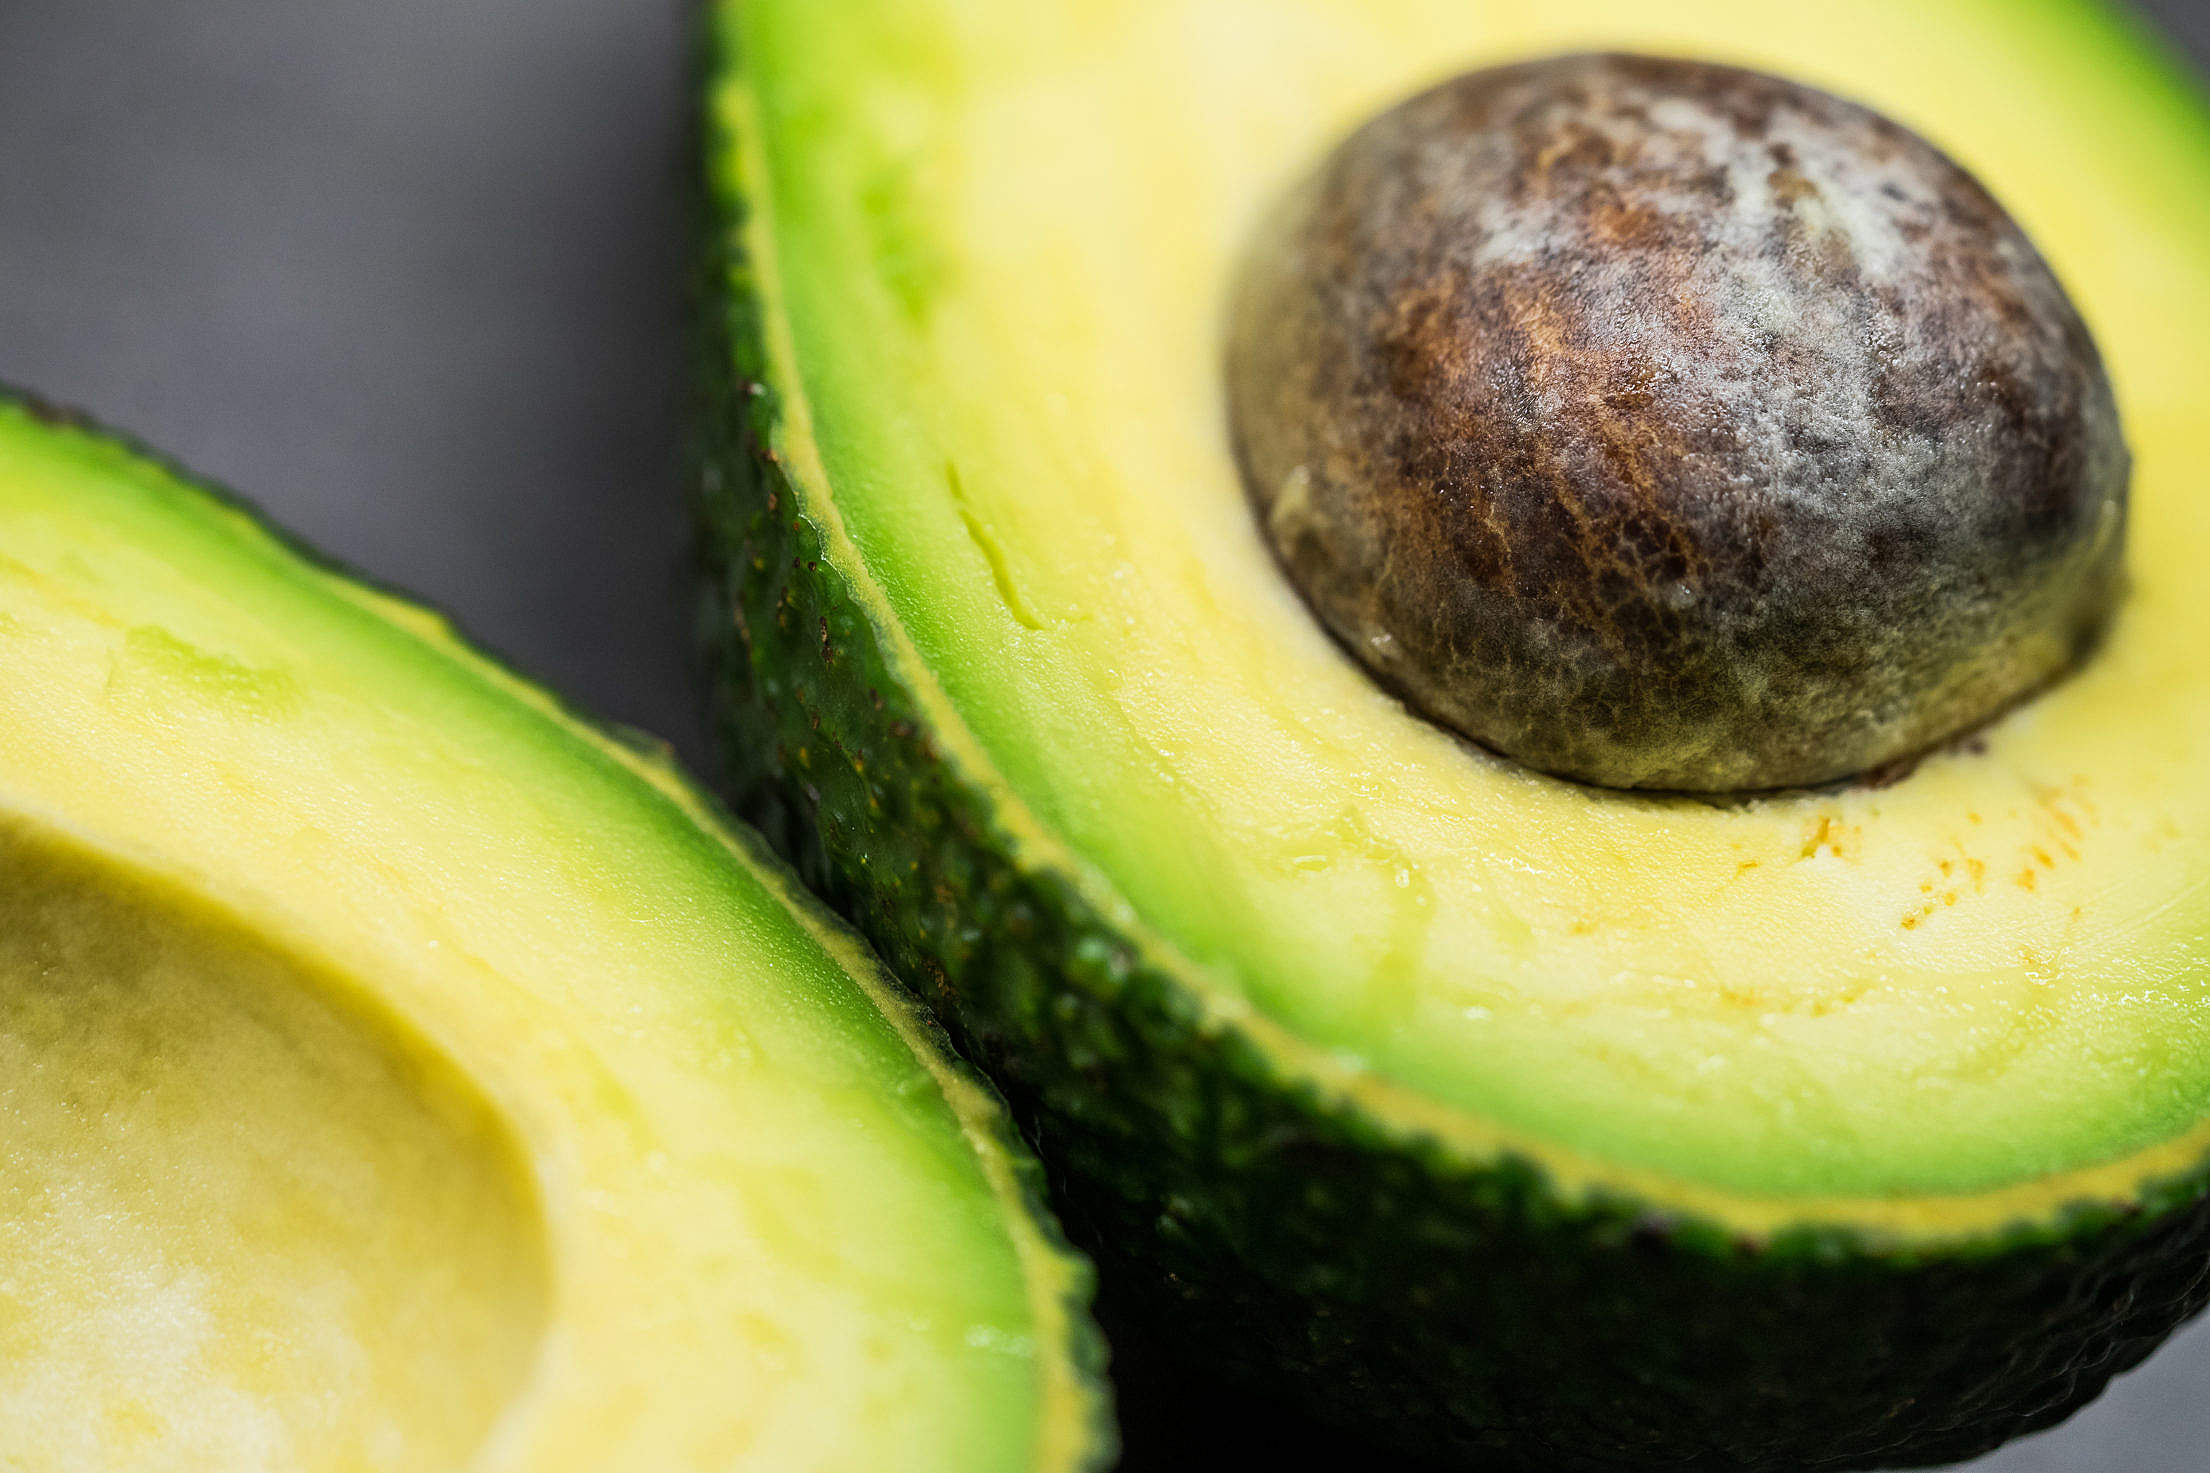 Download Avocado Free Stock Photo